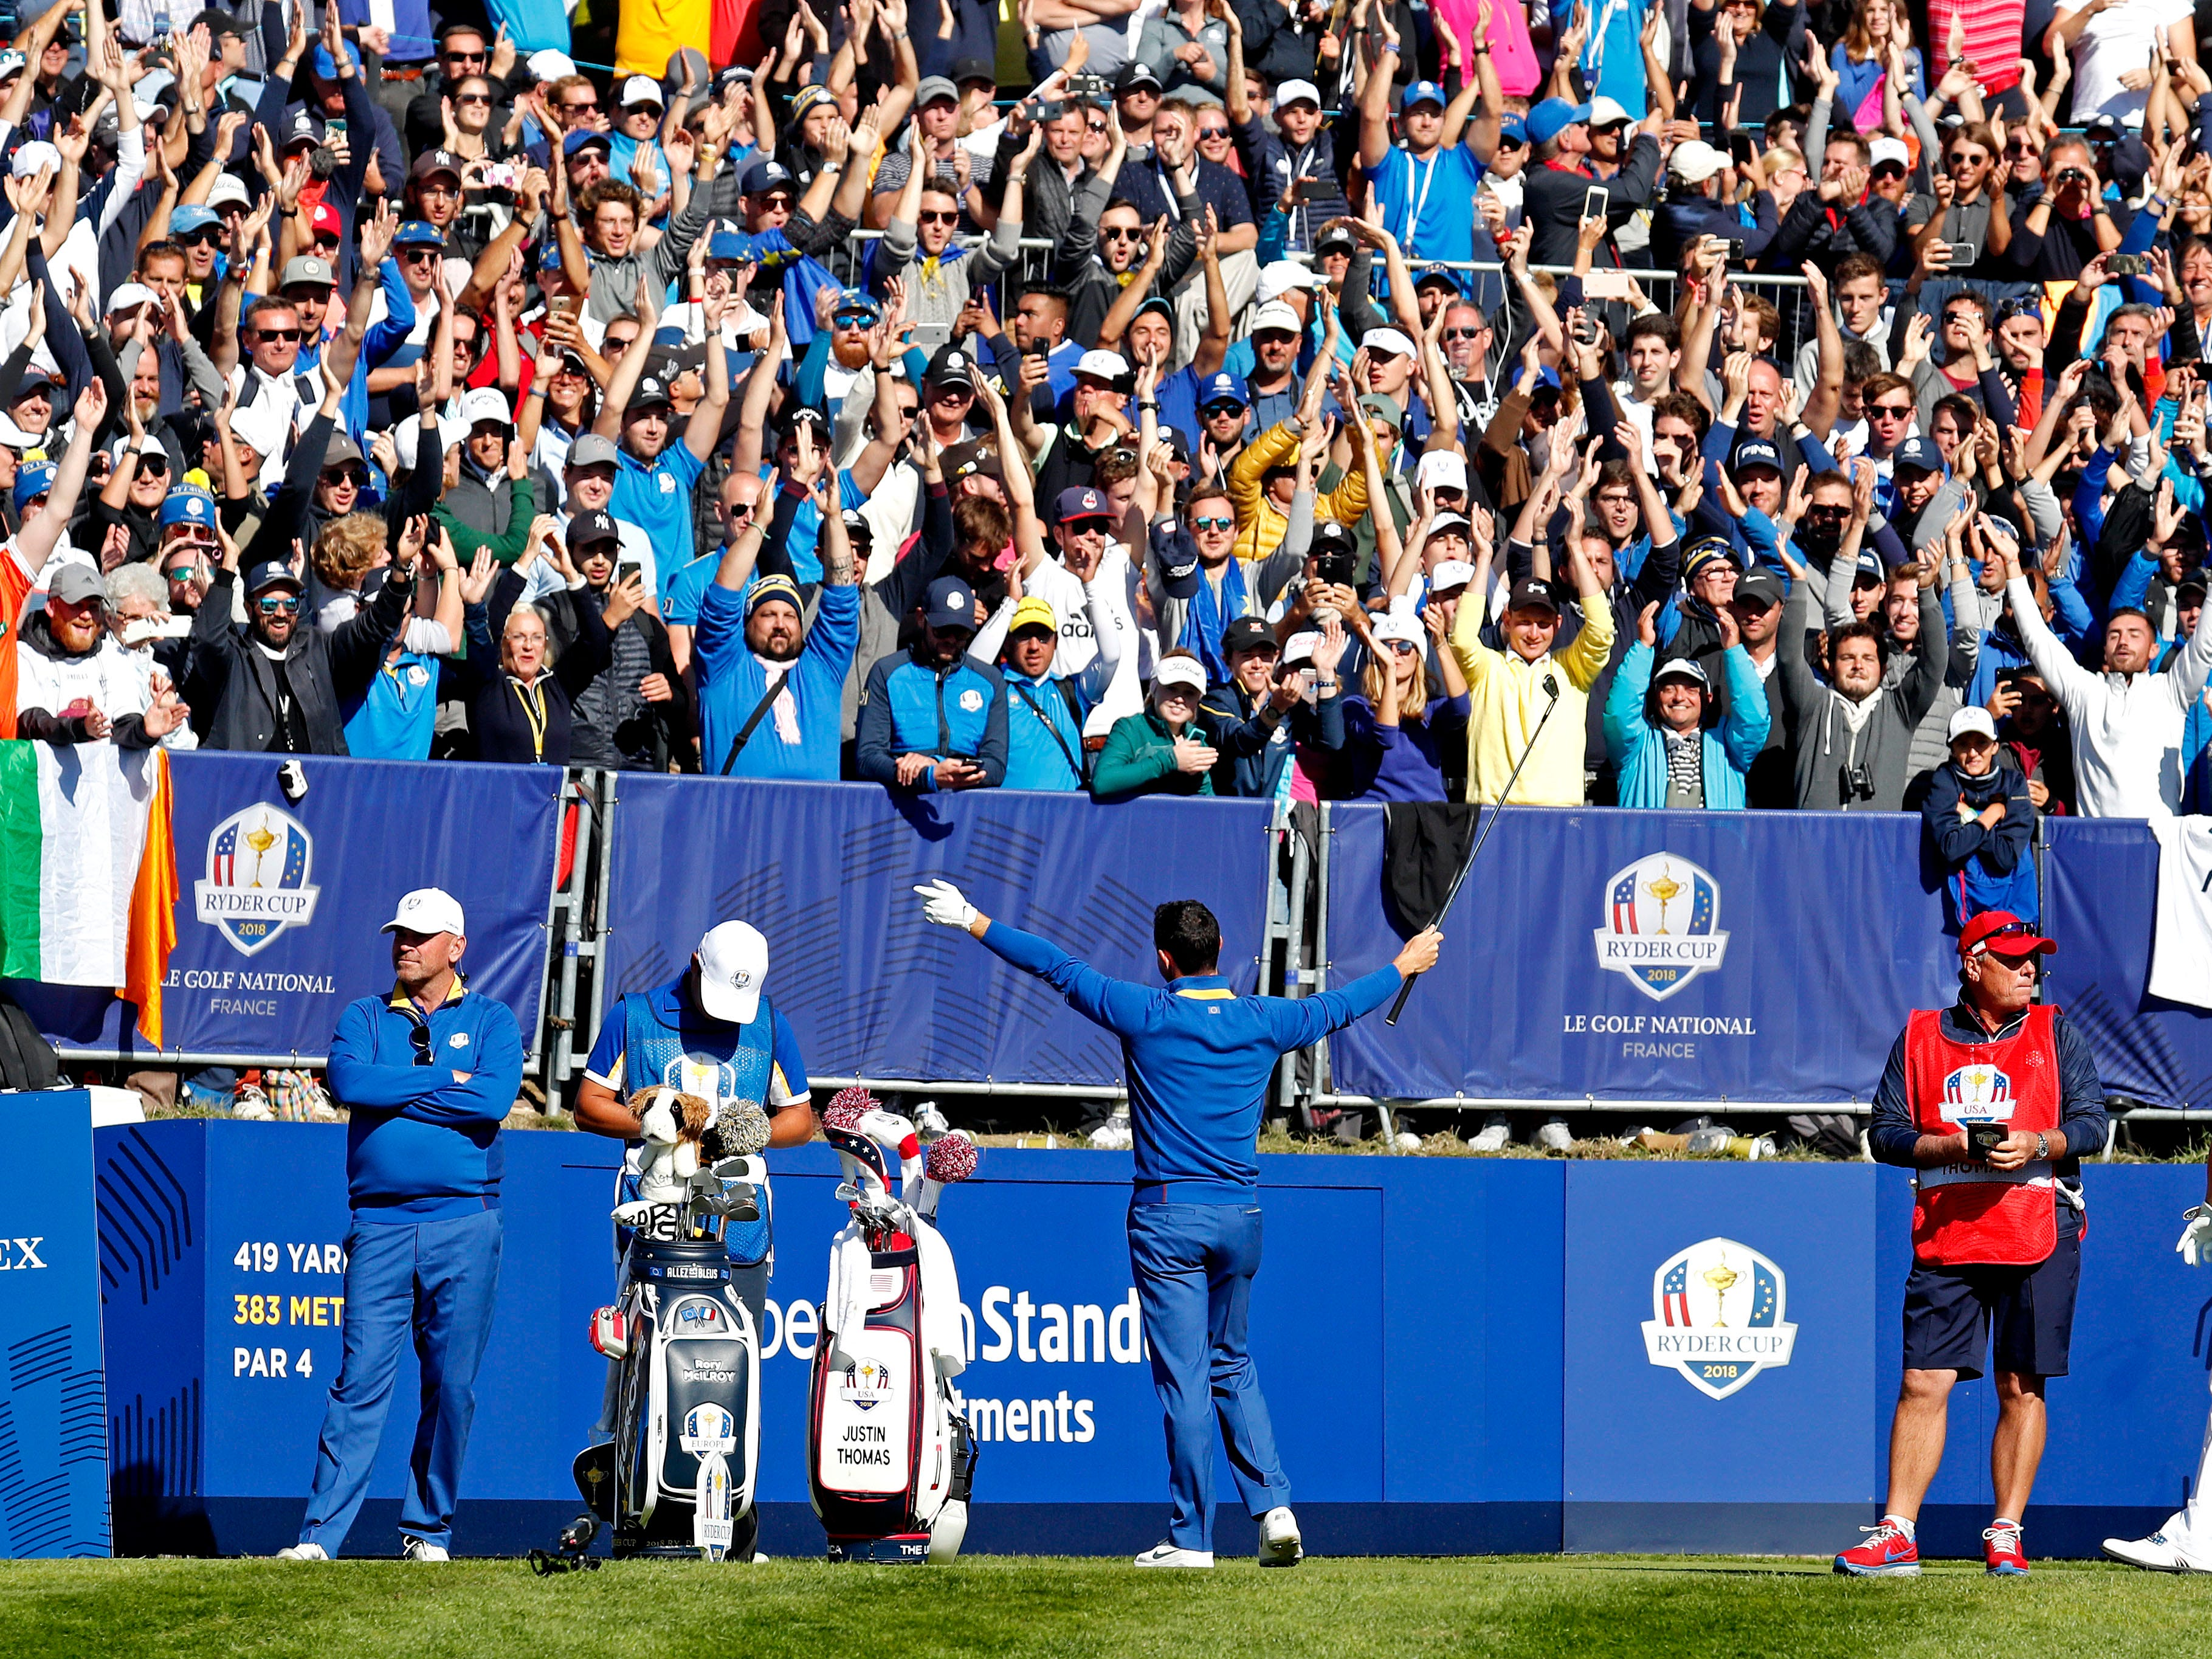 Europe golfer Rory McIlroy leads a cheer with fans during the Sunday singles matches at Le Golf National.